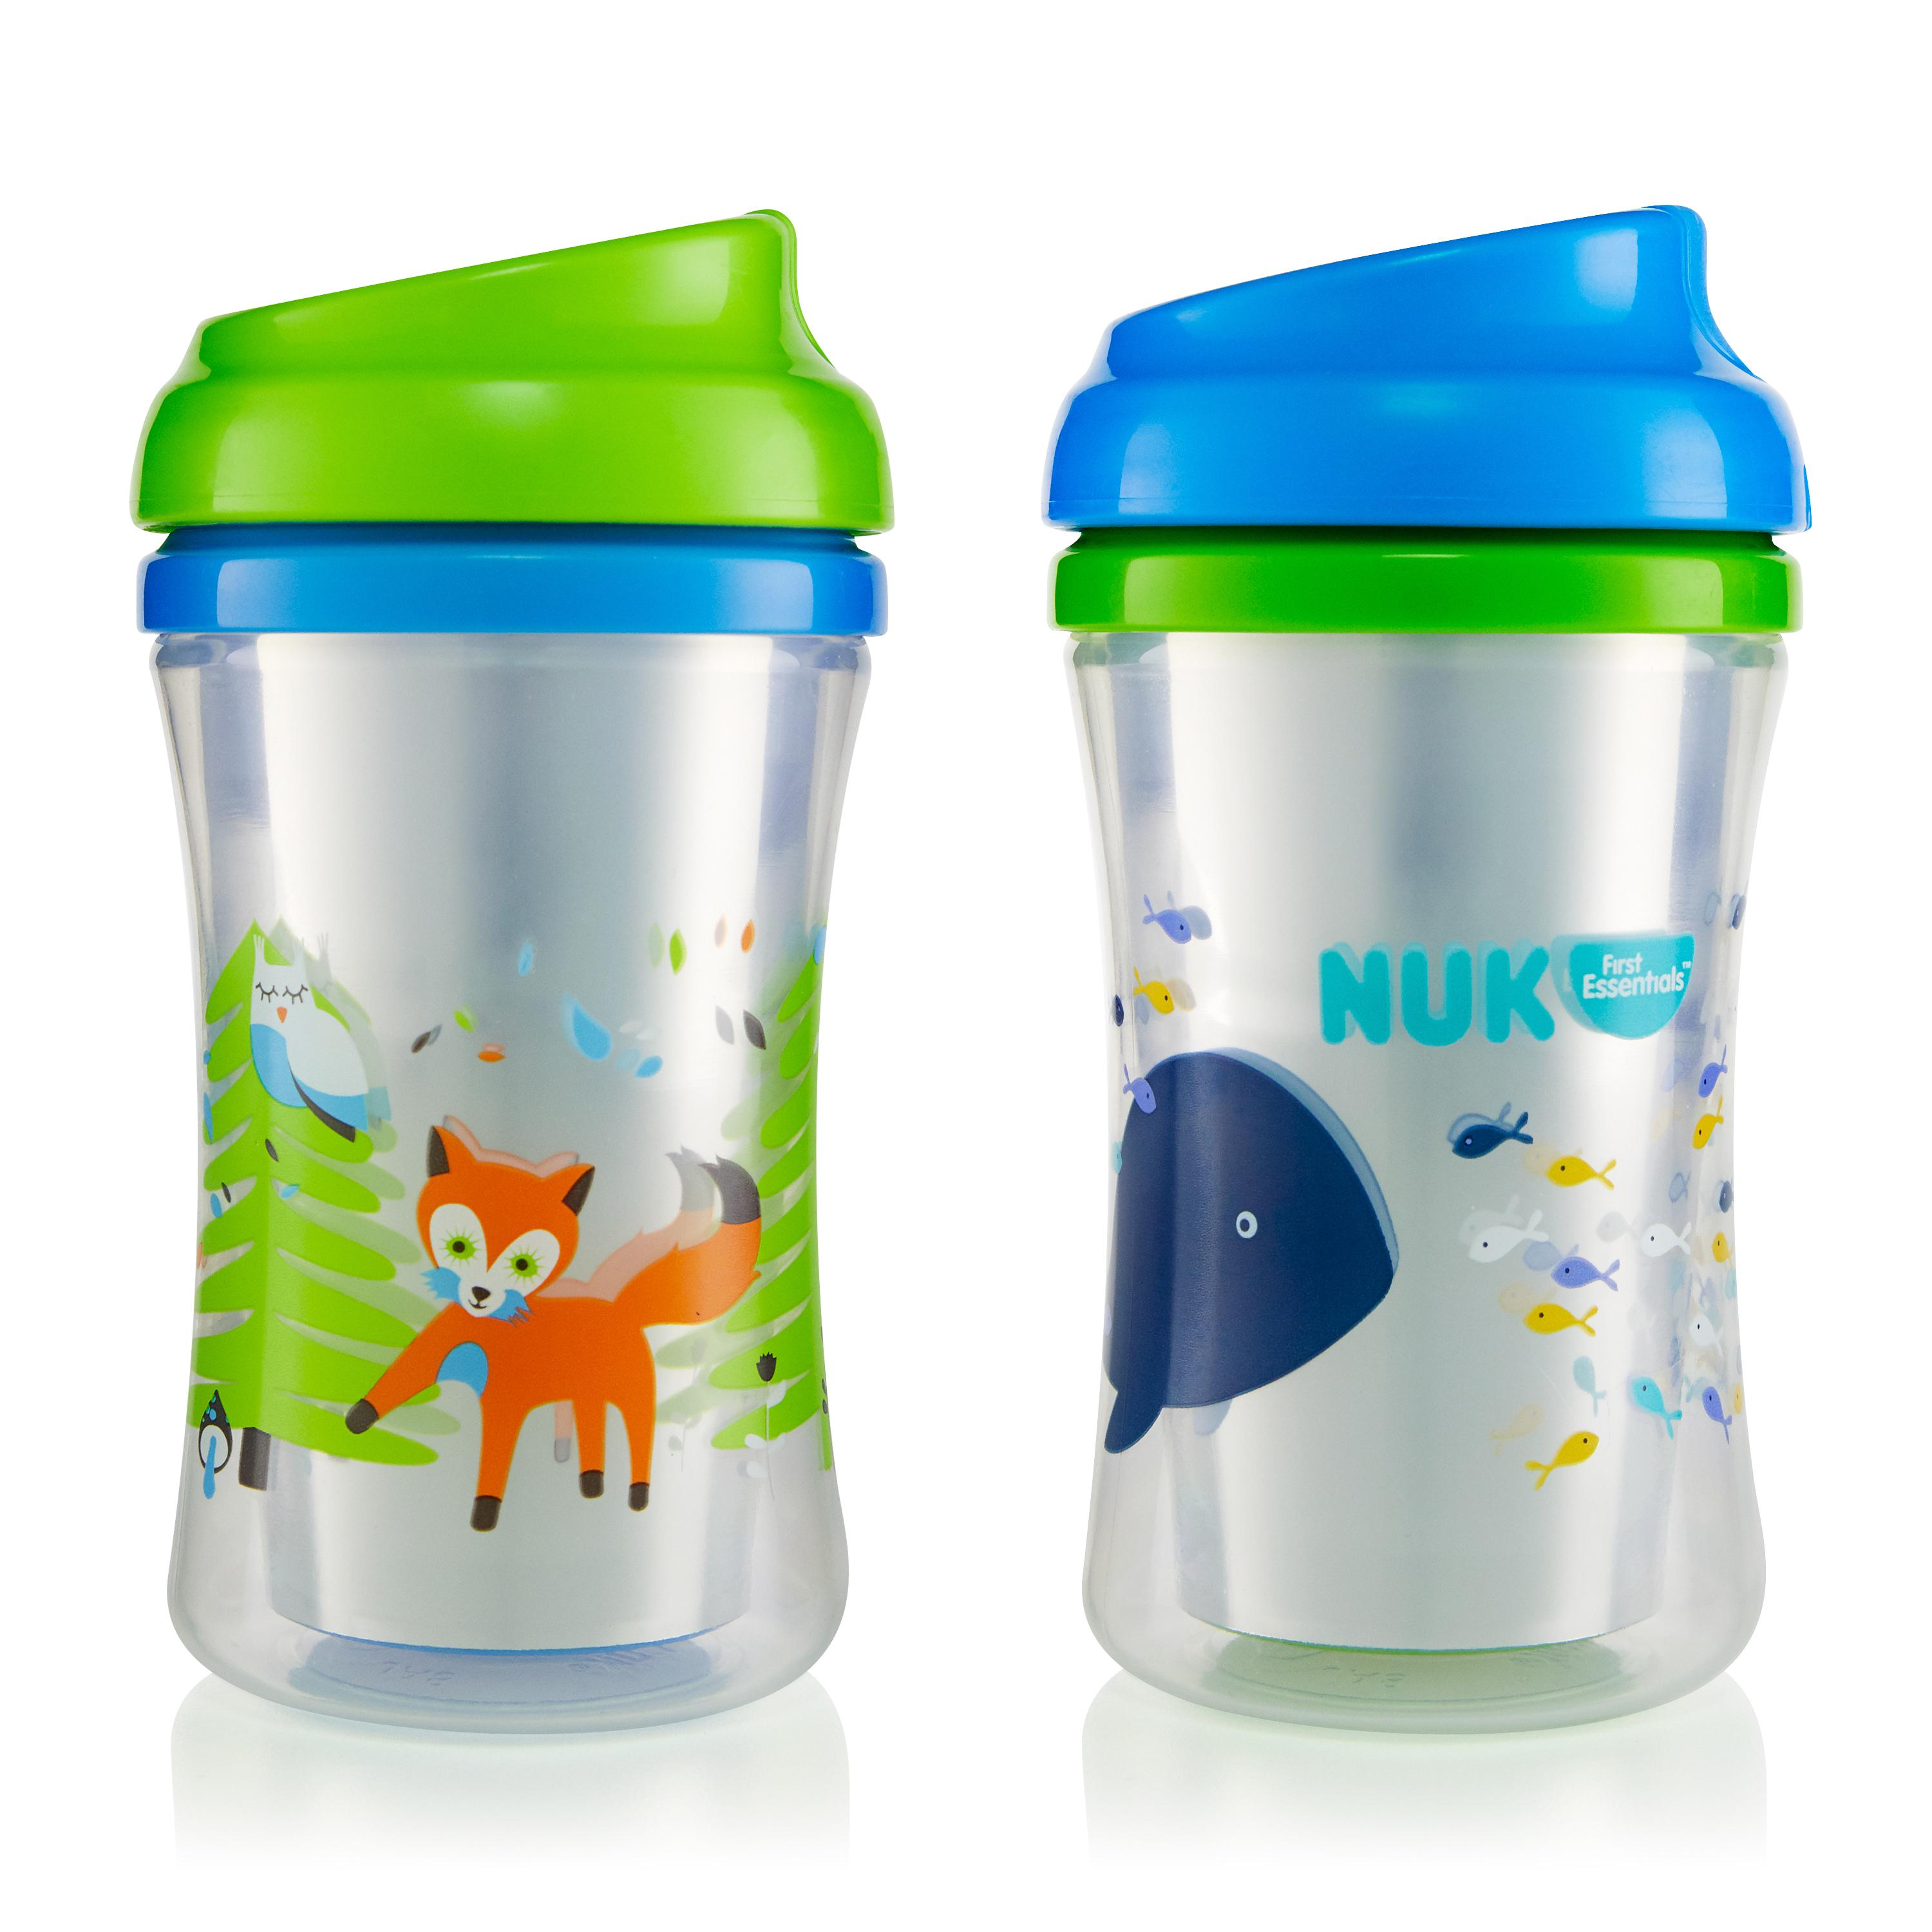 First Essentials by NUK™ Insulated Cup-like Rim Sippy Cup, 9 oz., 2-Pack Product Image 1 of 6